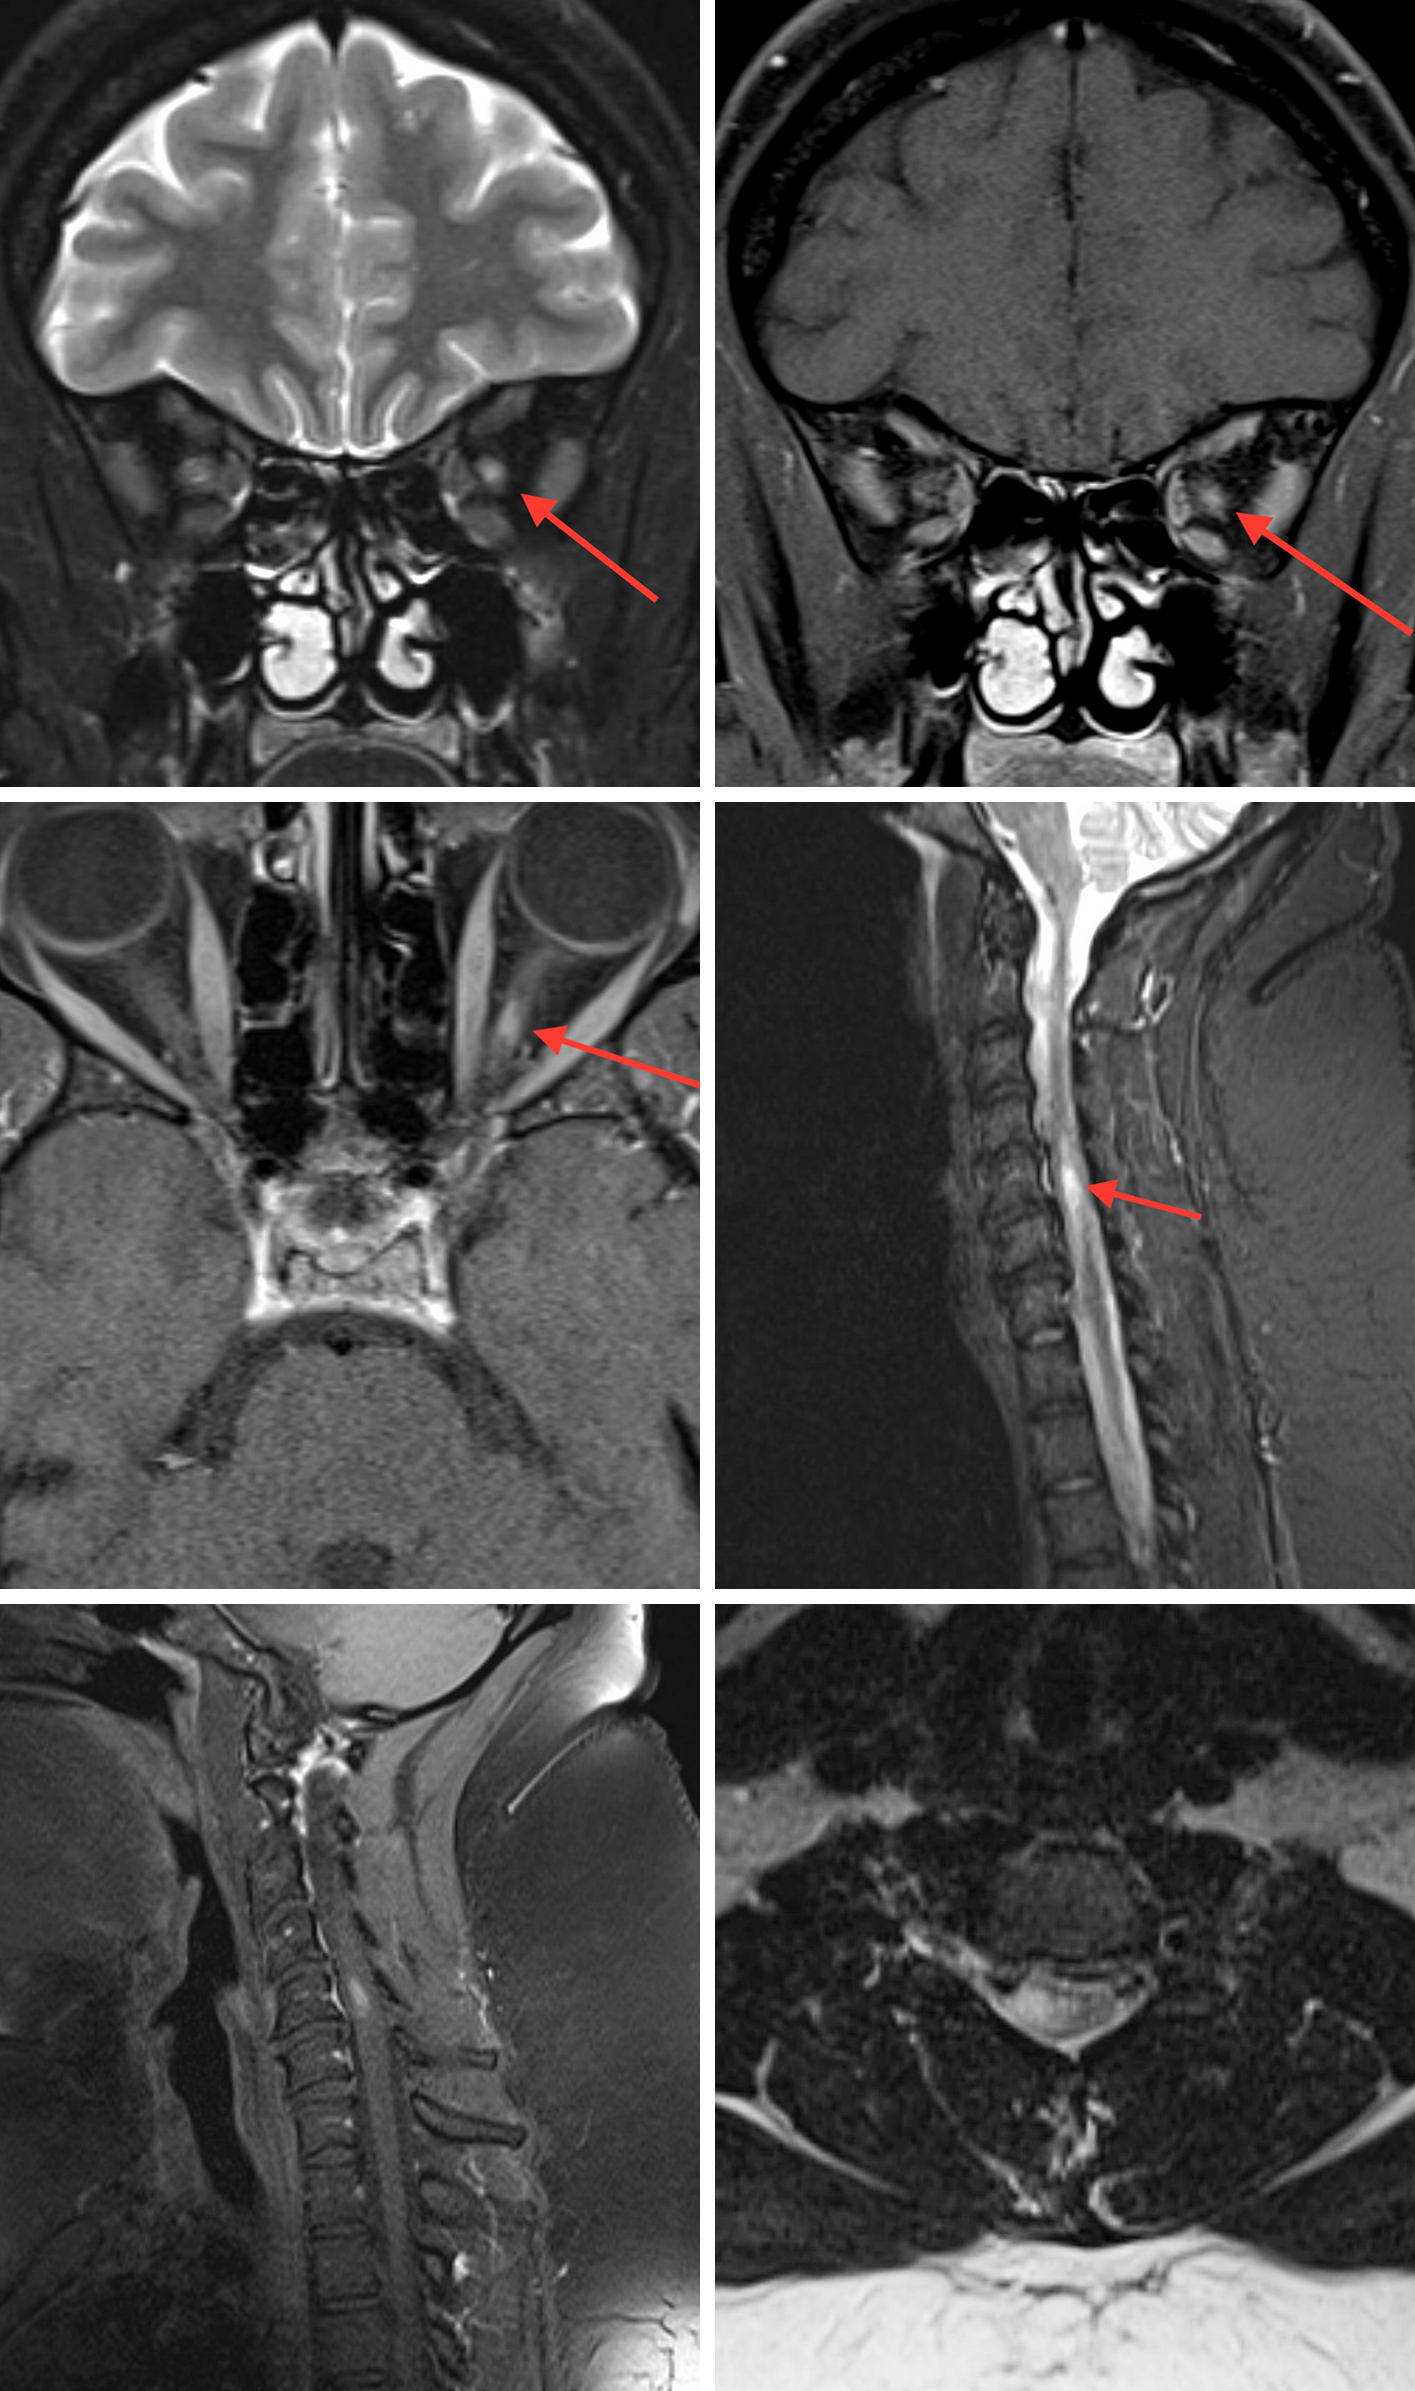 Figure 2: Coronal T2FS (top row left), coronal T1 post-contrast fat-saturated (FS) (top row right), and axial T1 post-contrast FS images (middle row left) through the orbits demonstrate a short segment T2 hyperintense lesion with associated enhancement in the left optic nerve. Sagittal STIR (middle row right), sagittal T1 post-contrast FS (bottom row left), and axial T2 images (bottom row right) of the cervical spine demonstrate an enhancing, short segment (<2 vertebral bodies in length), T2/STIR hyperintense lesion in the peripheral aspect of the spinal cord. The differential diagnosis includes both Multiple Sclerosis and Neuromyelitis Optica. However, the length of the lesion in both the spinal cord and optic nerve favor multiple sclerosis. The patient's CSF demonstrated oligoclonal bands.